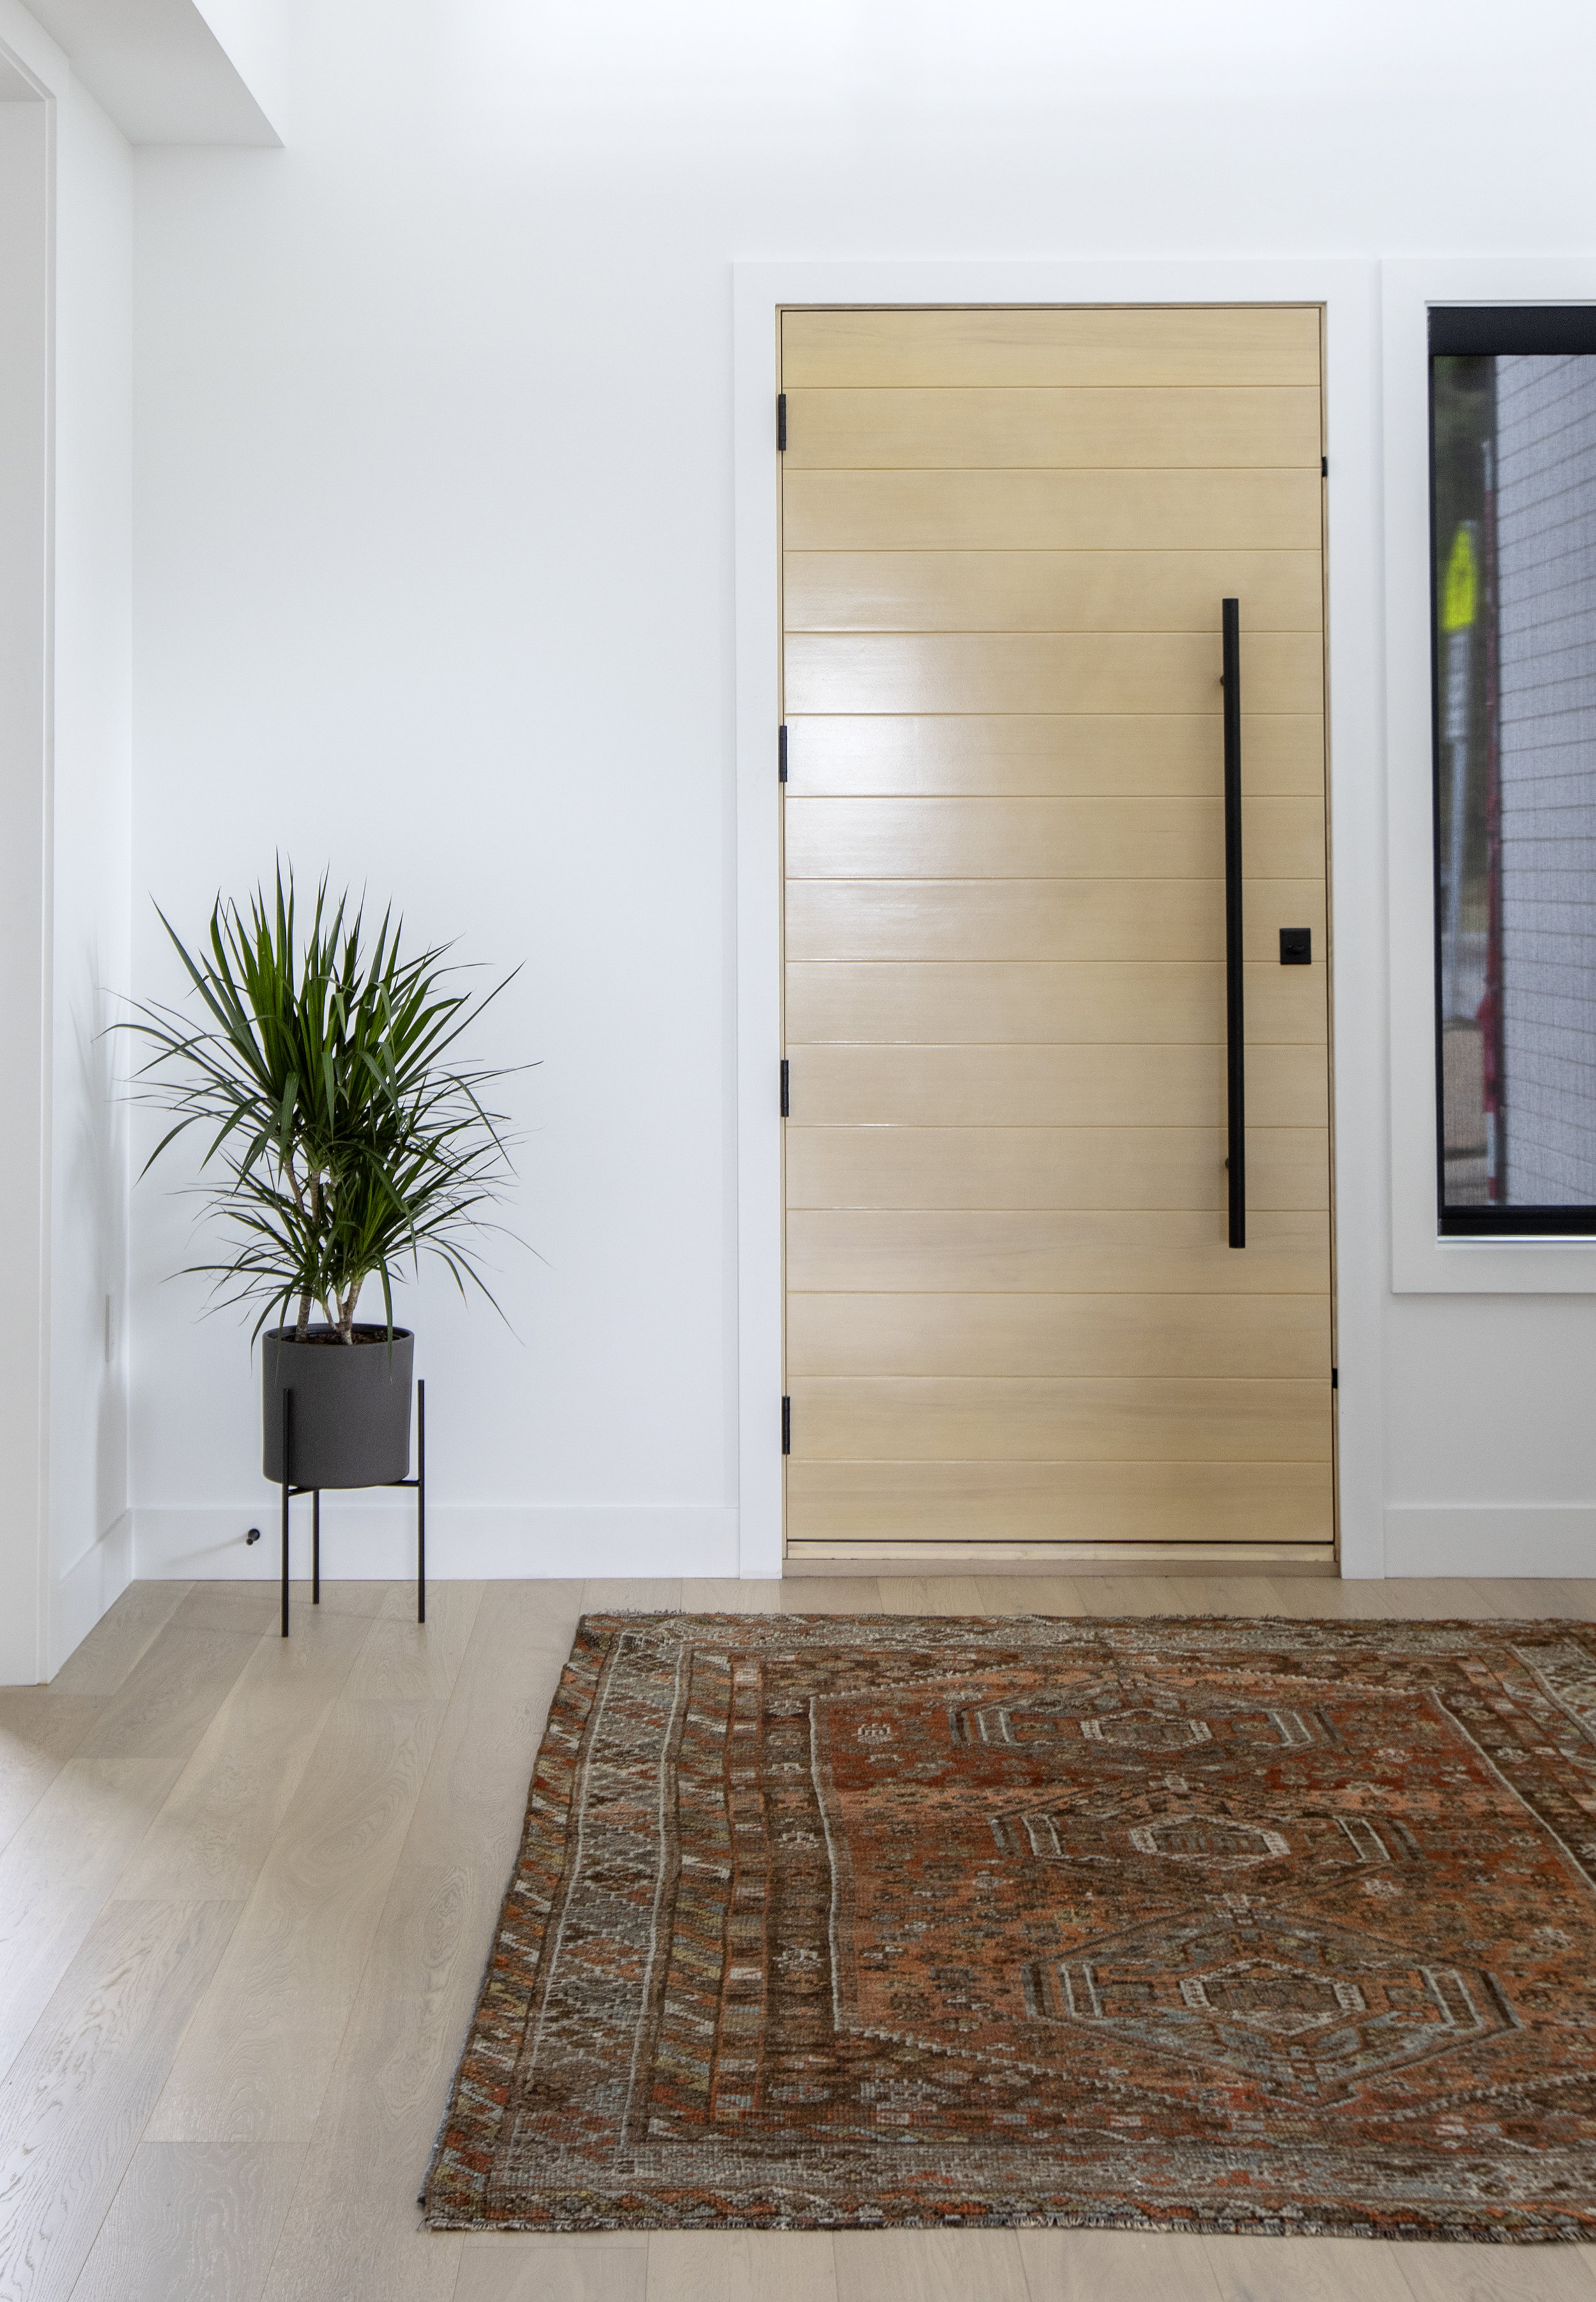 The custom front door of East 13th street is comprised of wooden slats and a large vertical bar, flanked by a beautiful maroon oriental rug.